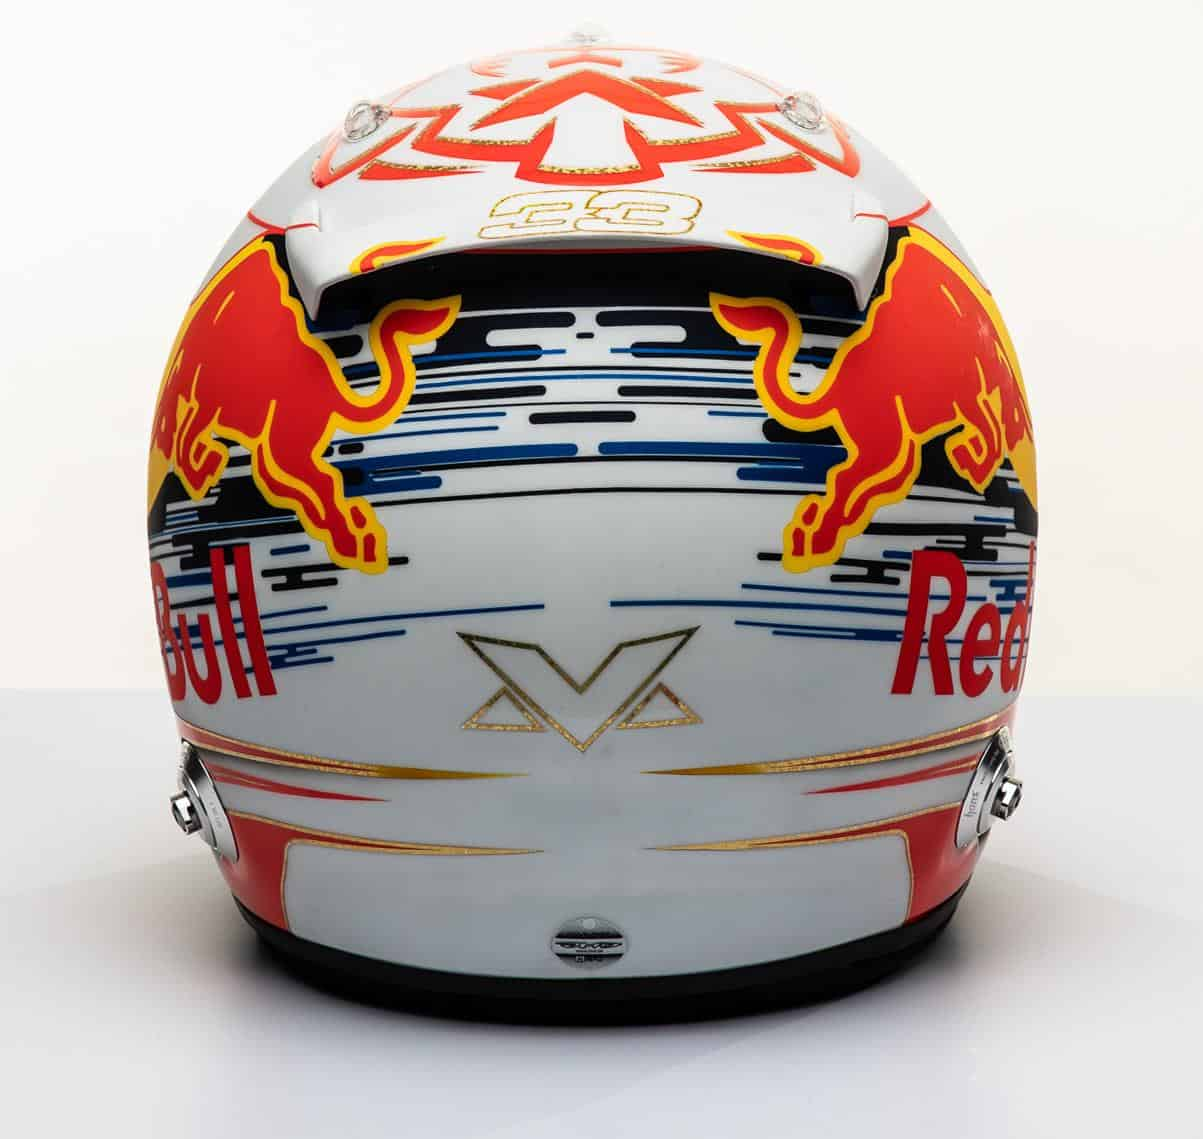 2019 F1 Max Verstappen Red Bull Honda helmet rear Photo Red Bull Edited by MAXF1net